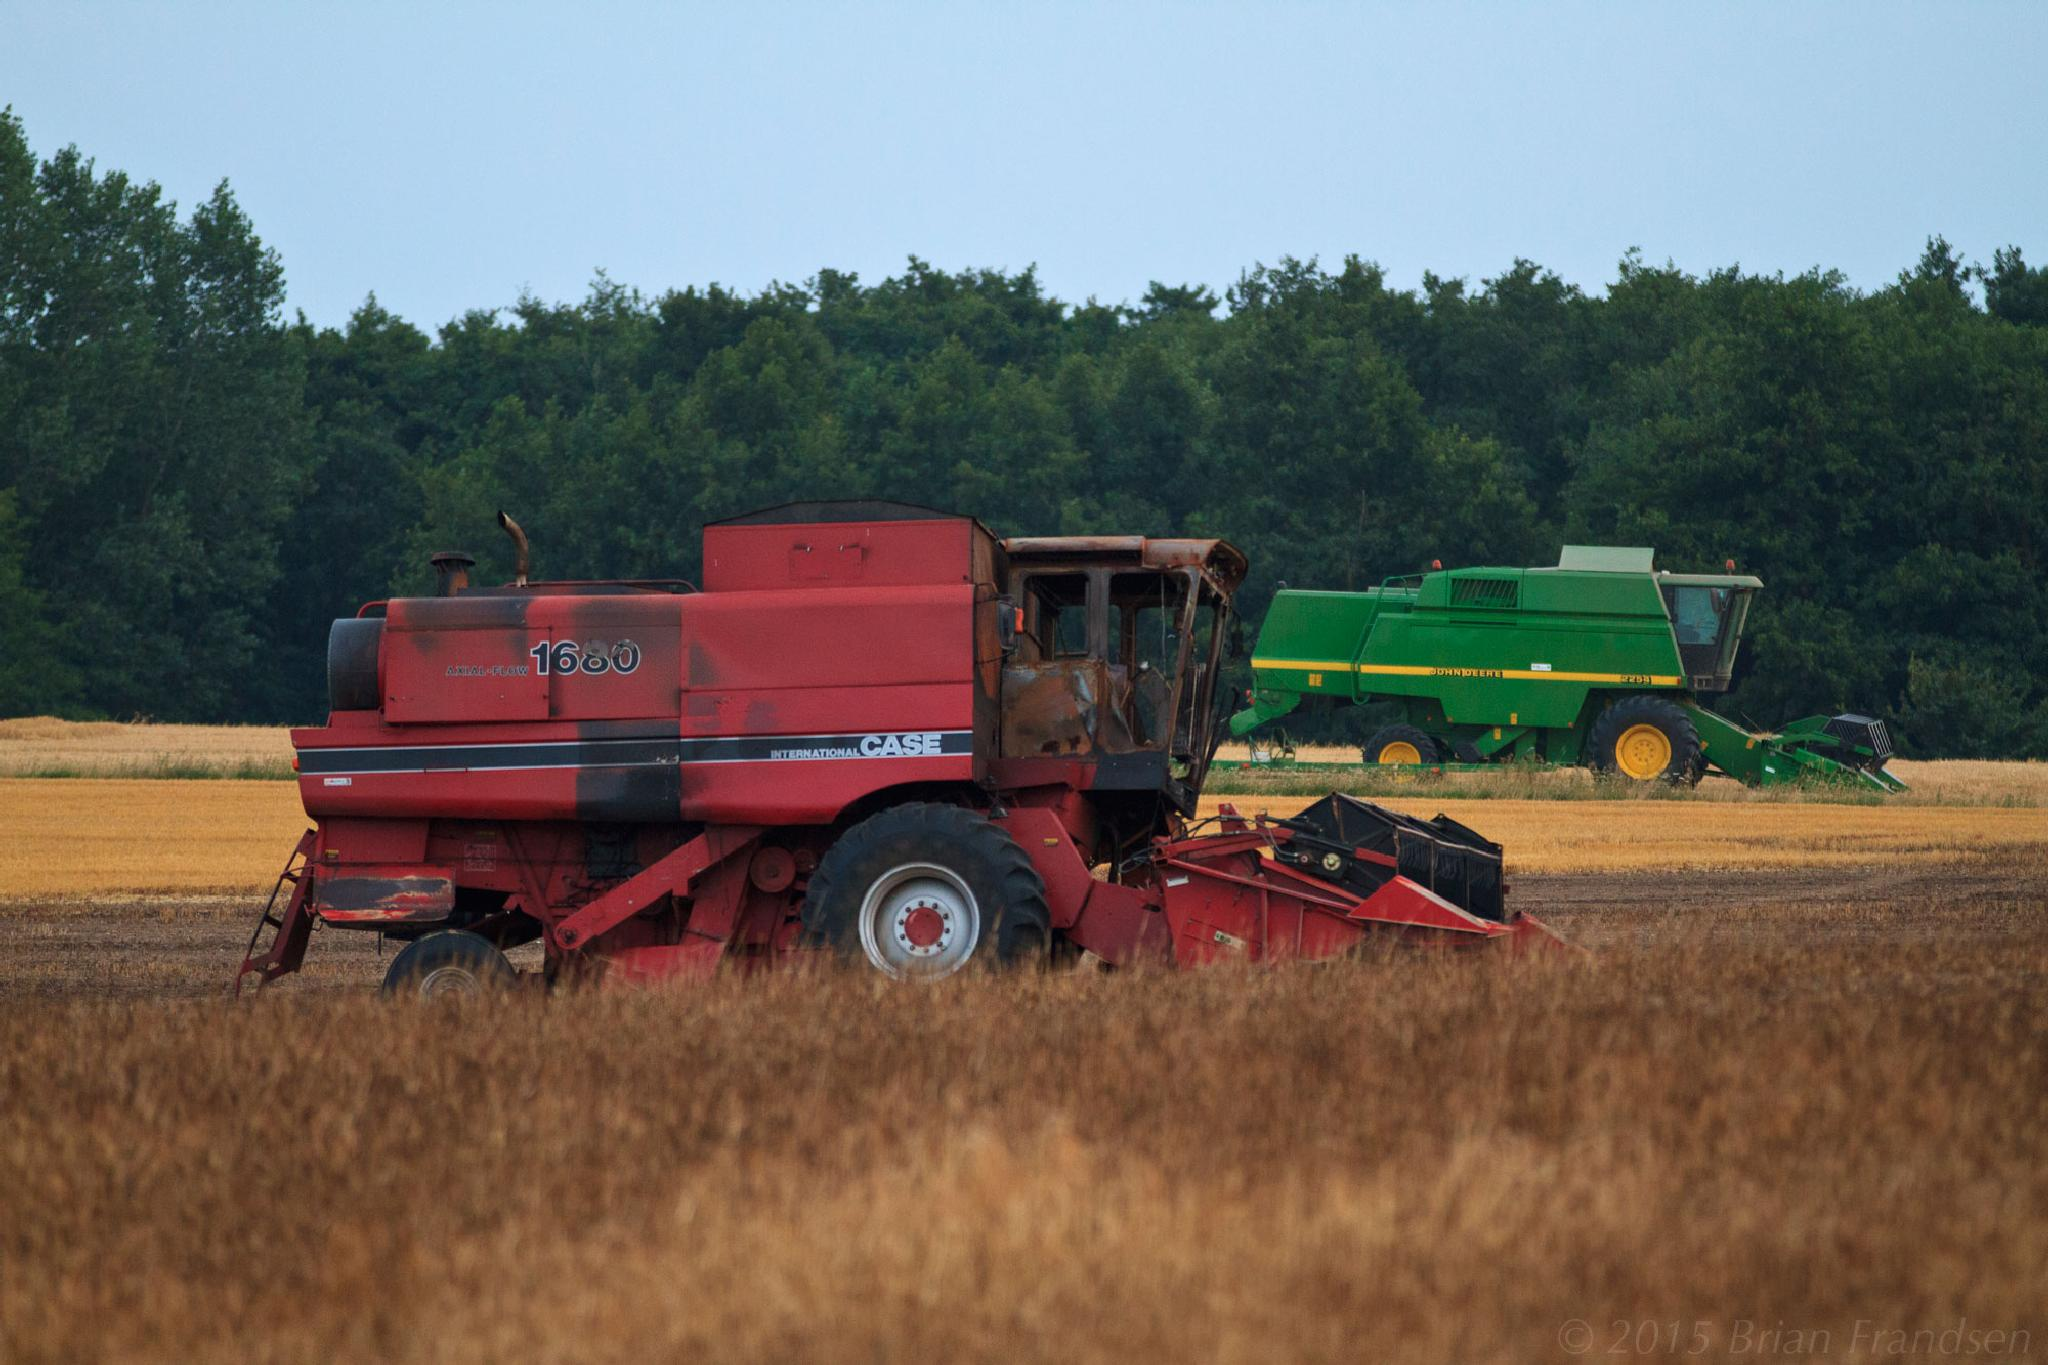 Death of a combine harvester by Brian Frandsen